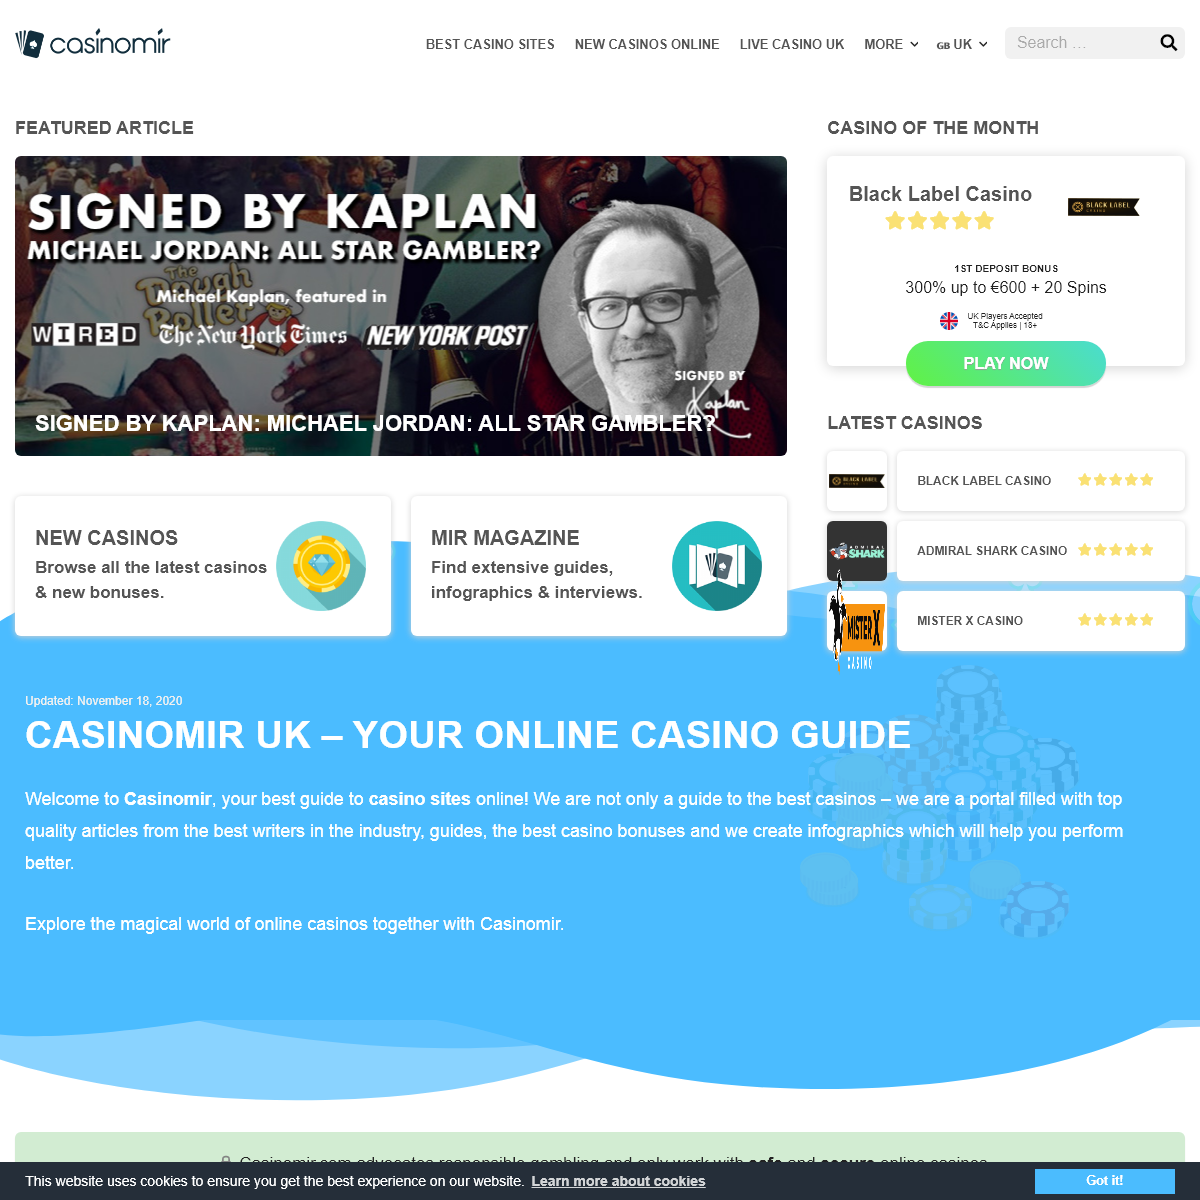 Casinomir UK - Your Guide to the World of Online Casinos